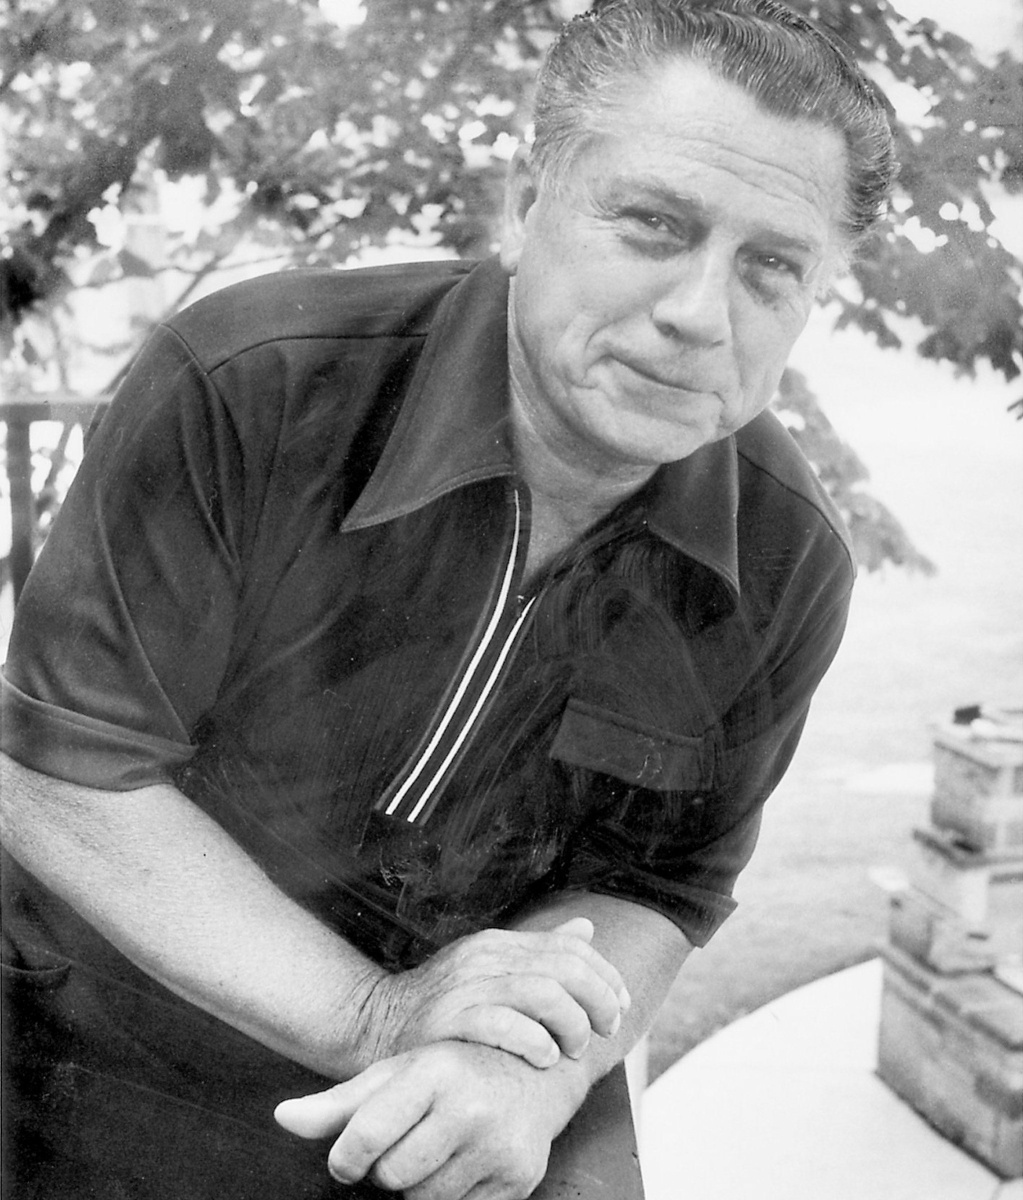 an introduction to the life of jimmy hoffa James riddle jimmy hoffa (born february 14, 1913 much like the eponymous jimmy hoffa jokes in the rocko's modern life episode skid marks.